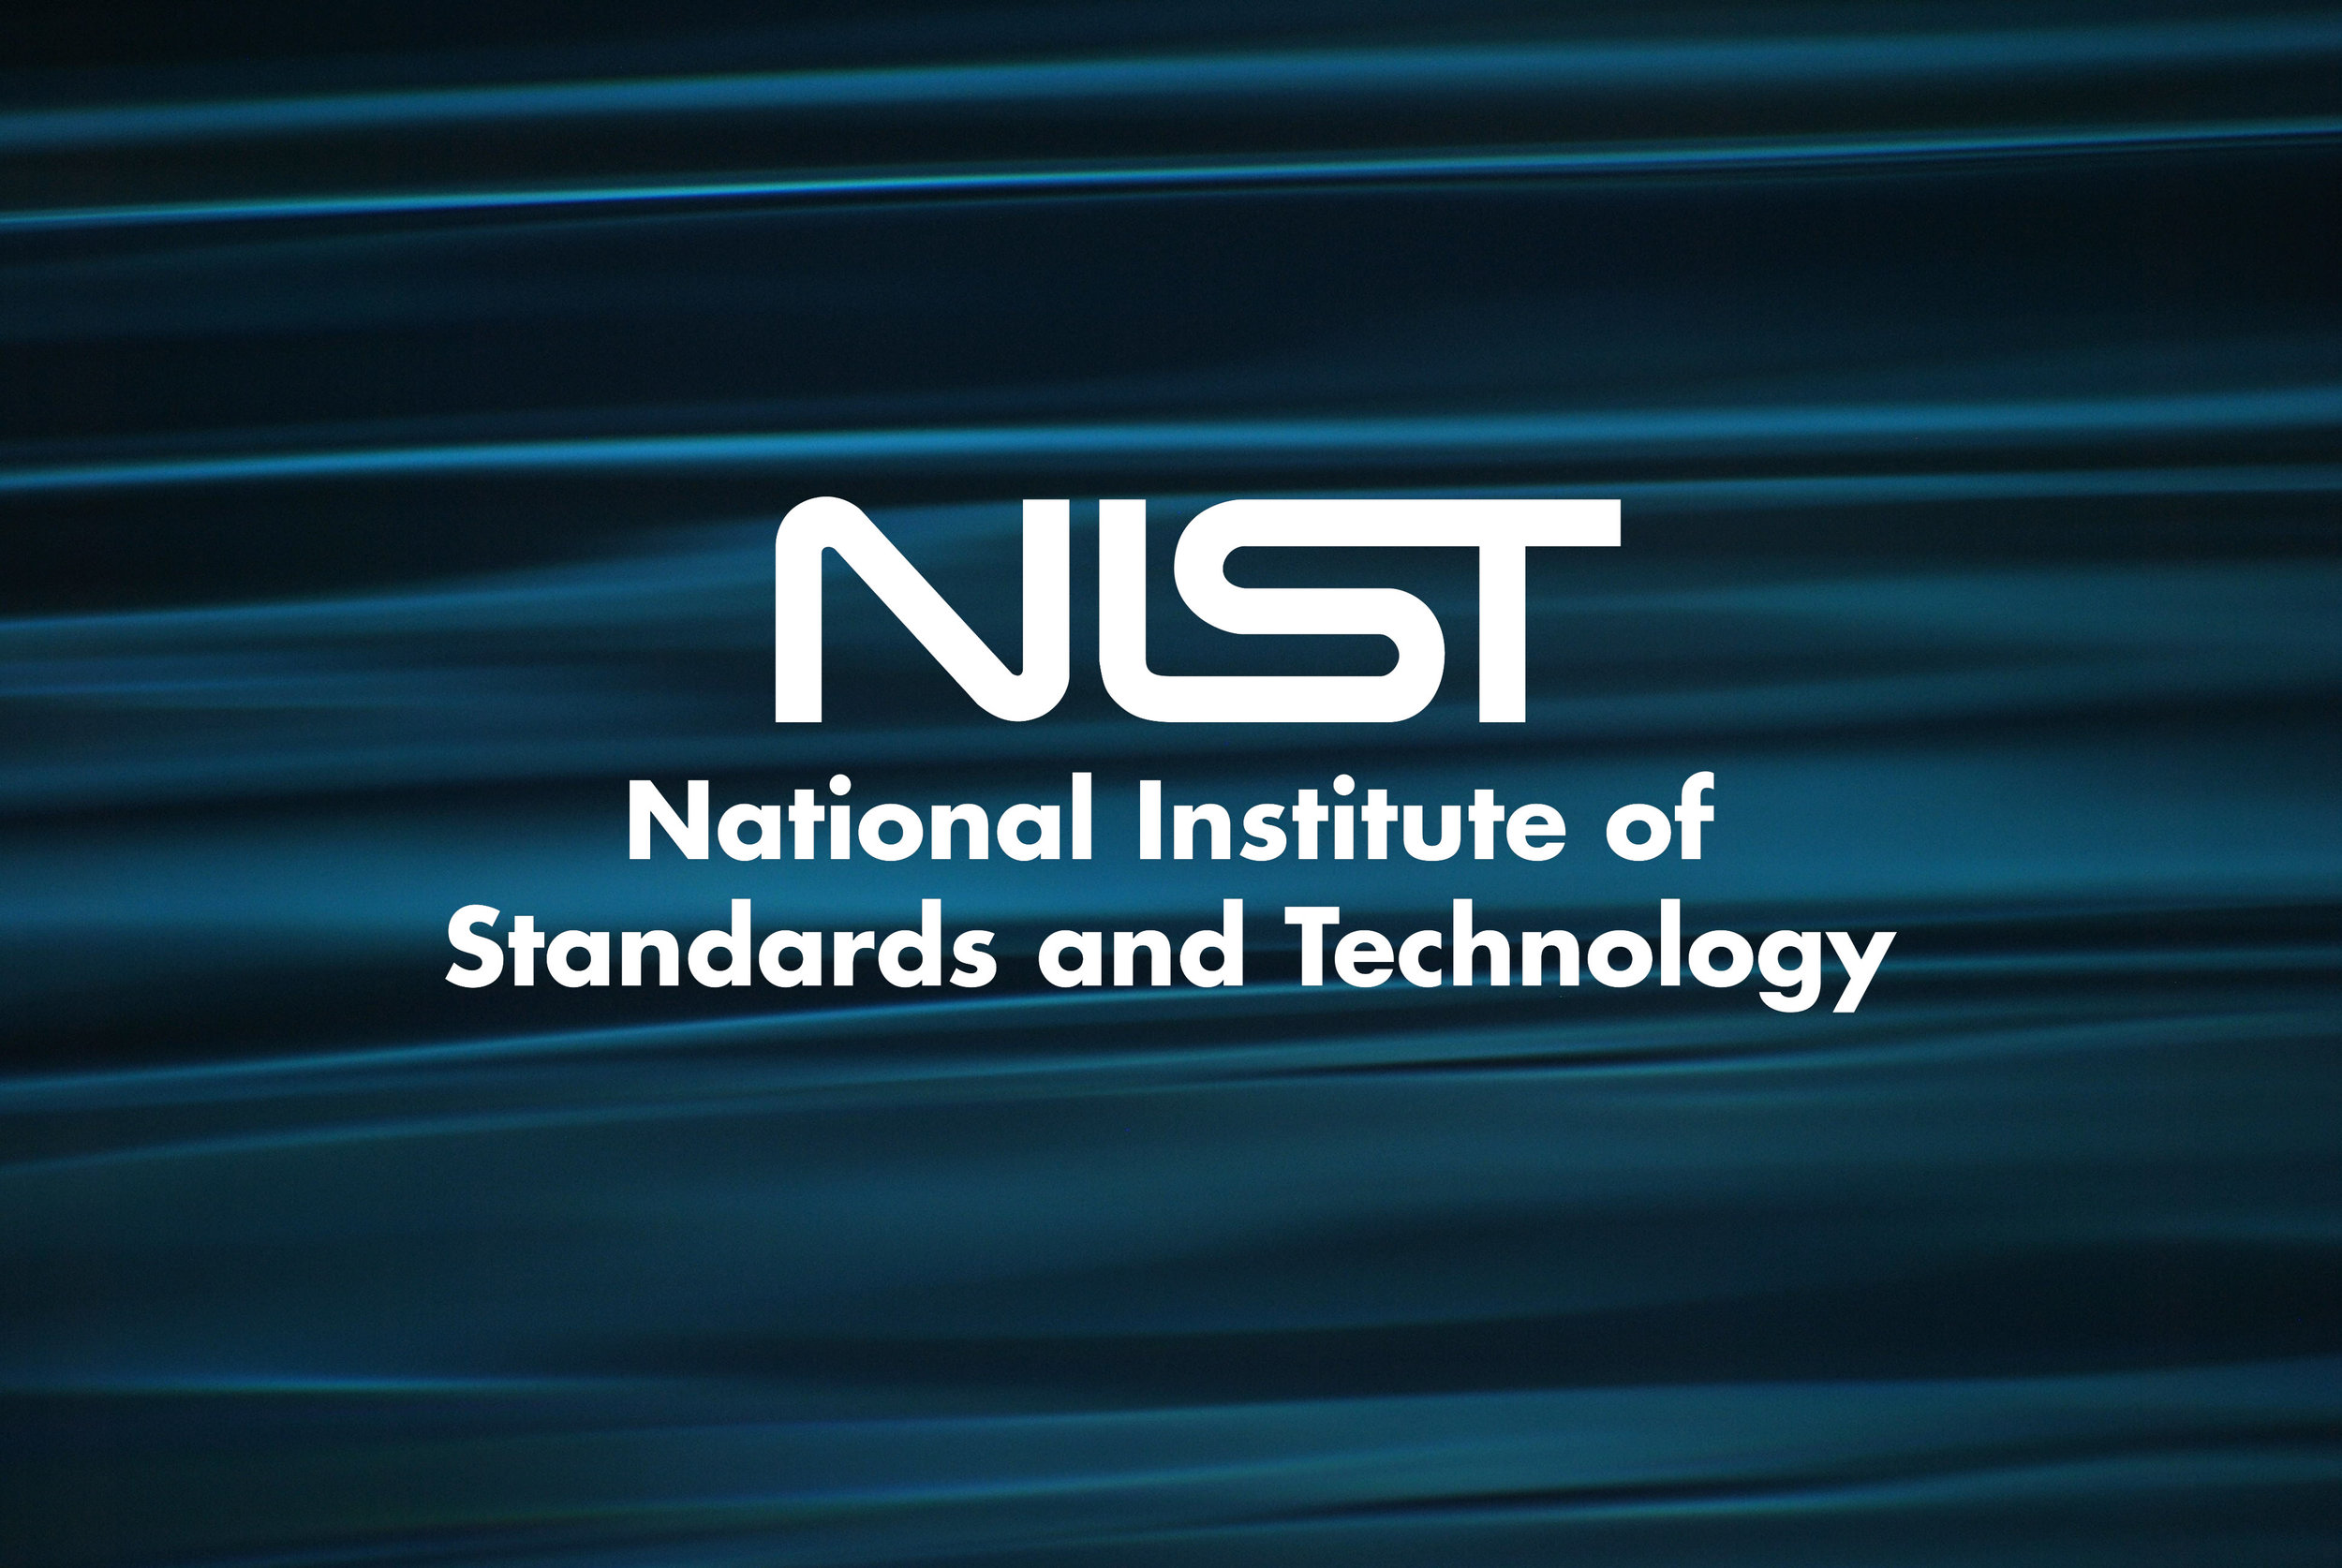 NIST (National Institute of Standards and Technology) - was founded in 1901 by the U.S. Congress in 1901, heeding the call from the nation's scientists and industrialists to establish an authoritative measurement and standards laboratory.